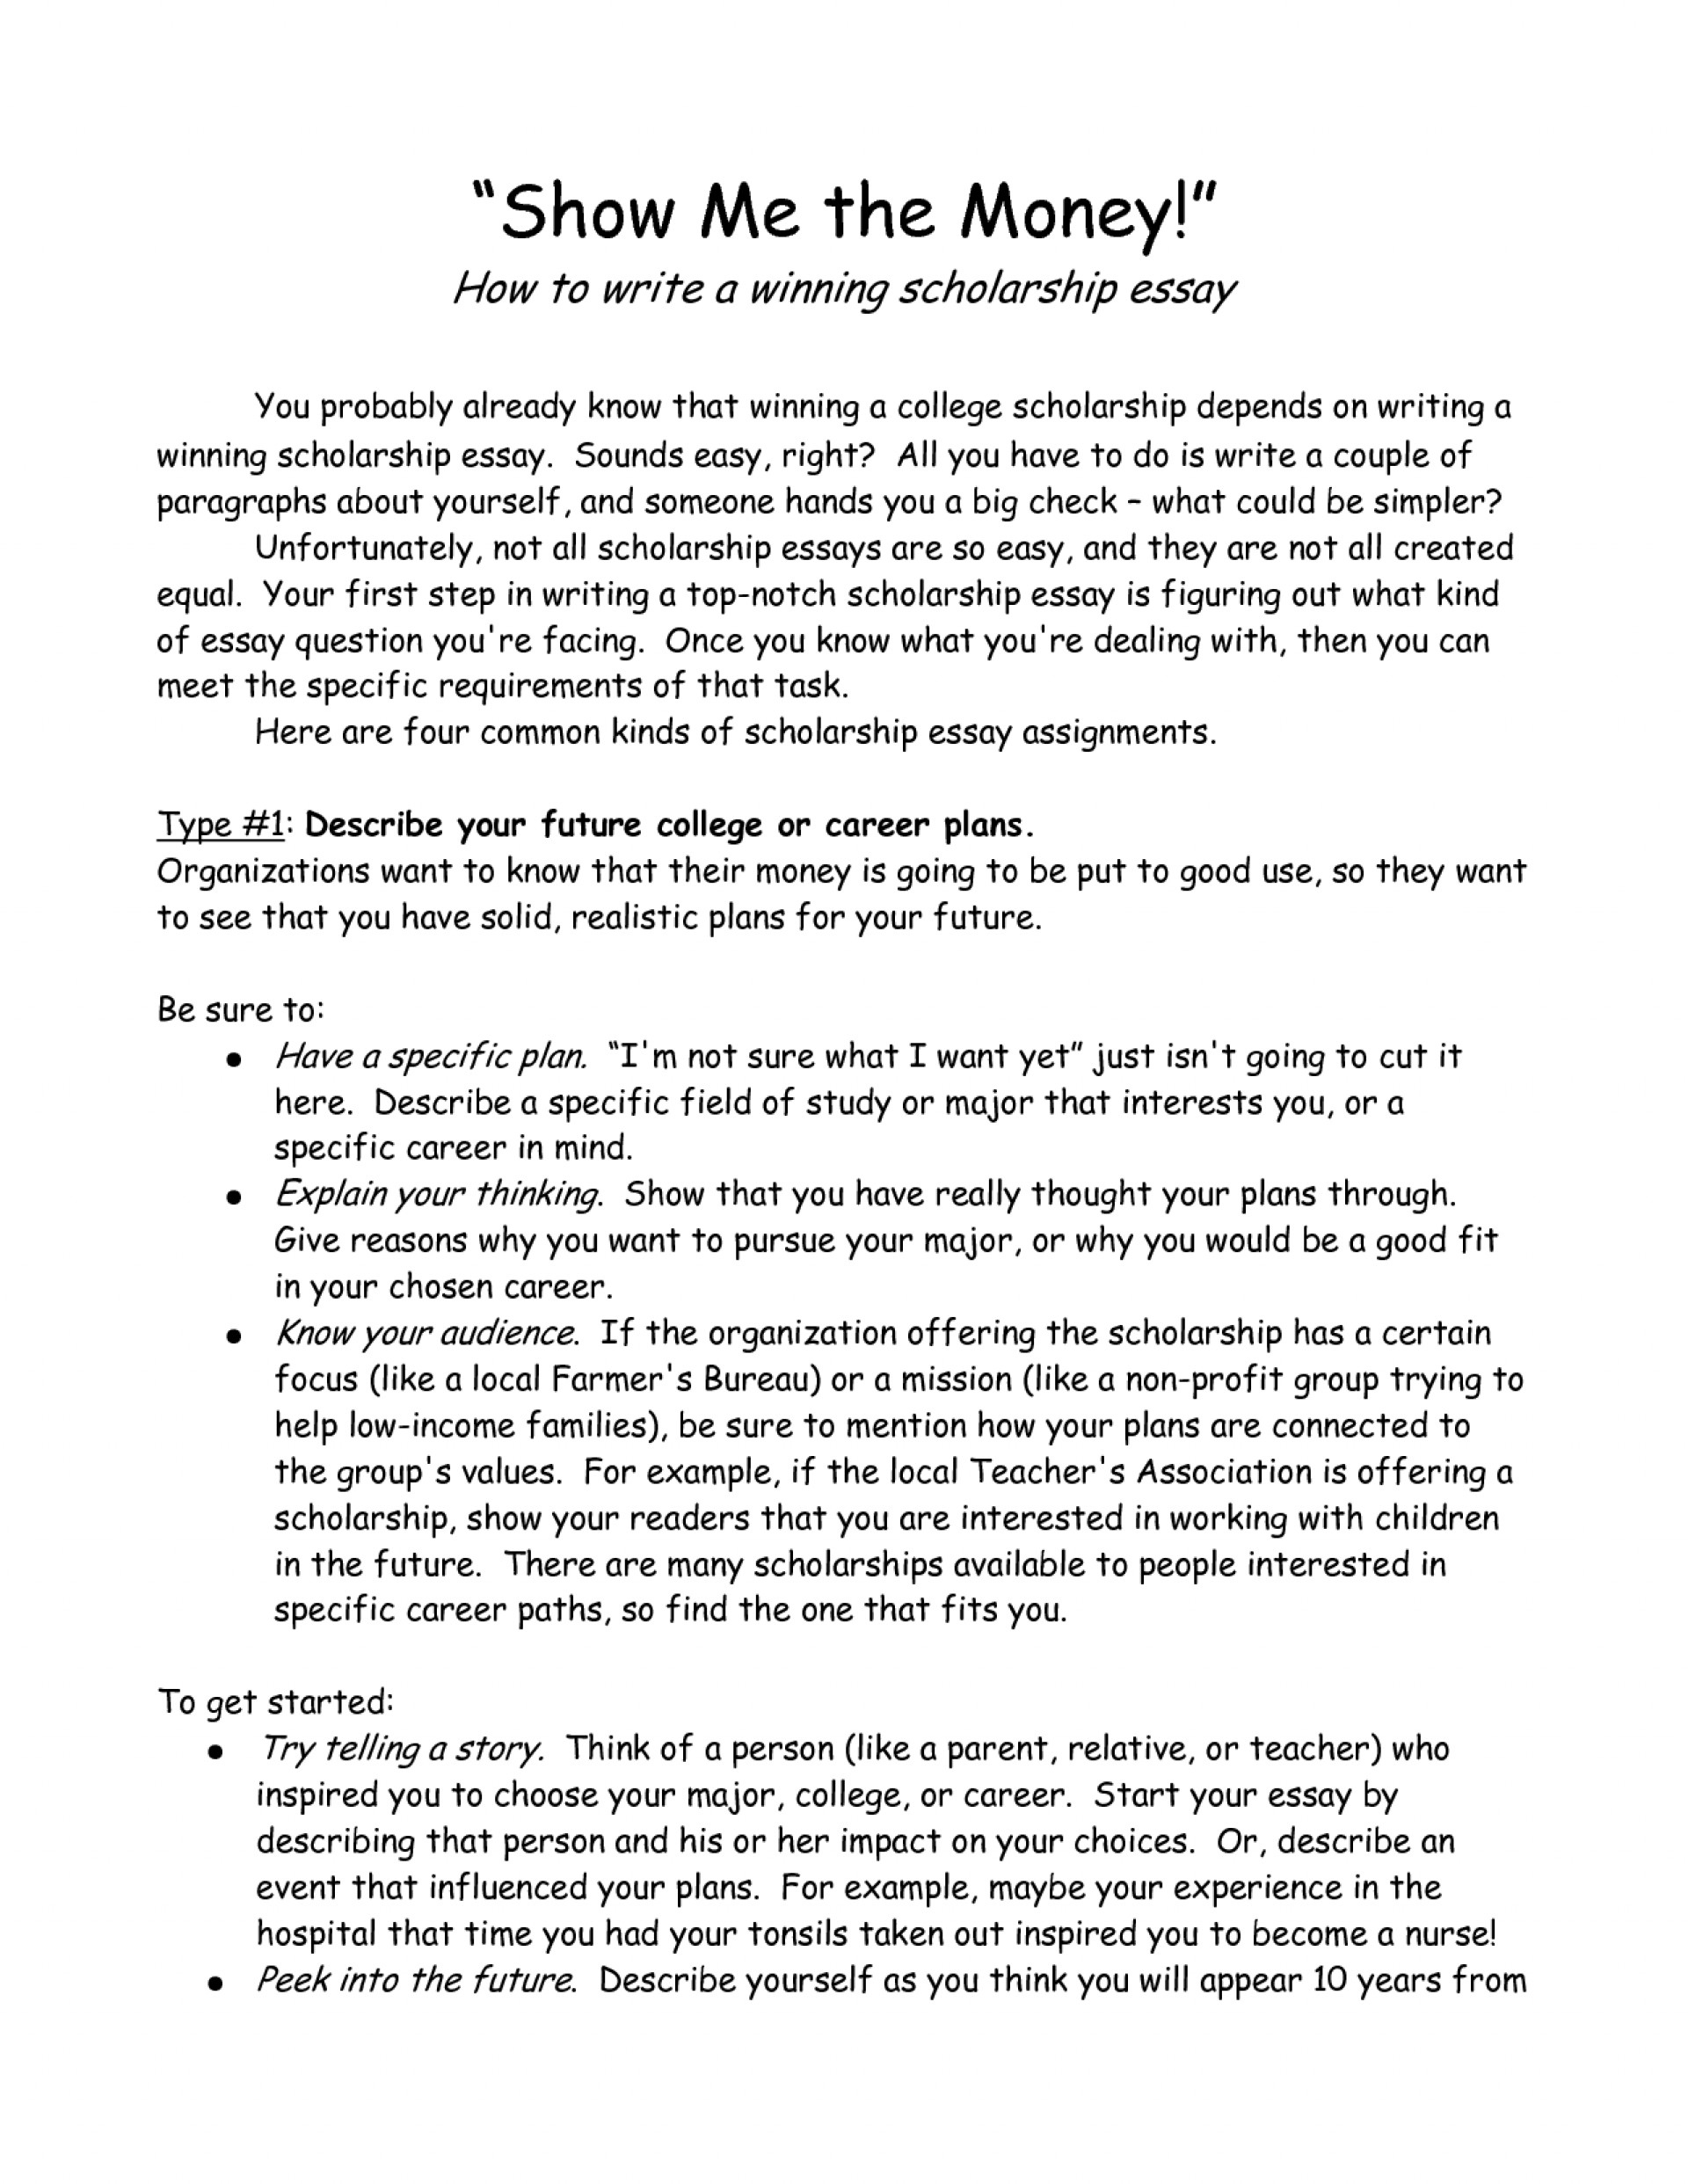 002 Essay Example Scholarships With Singular Essays Without Writing For High School Juniors Class Of 2020 No 2019 1920